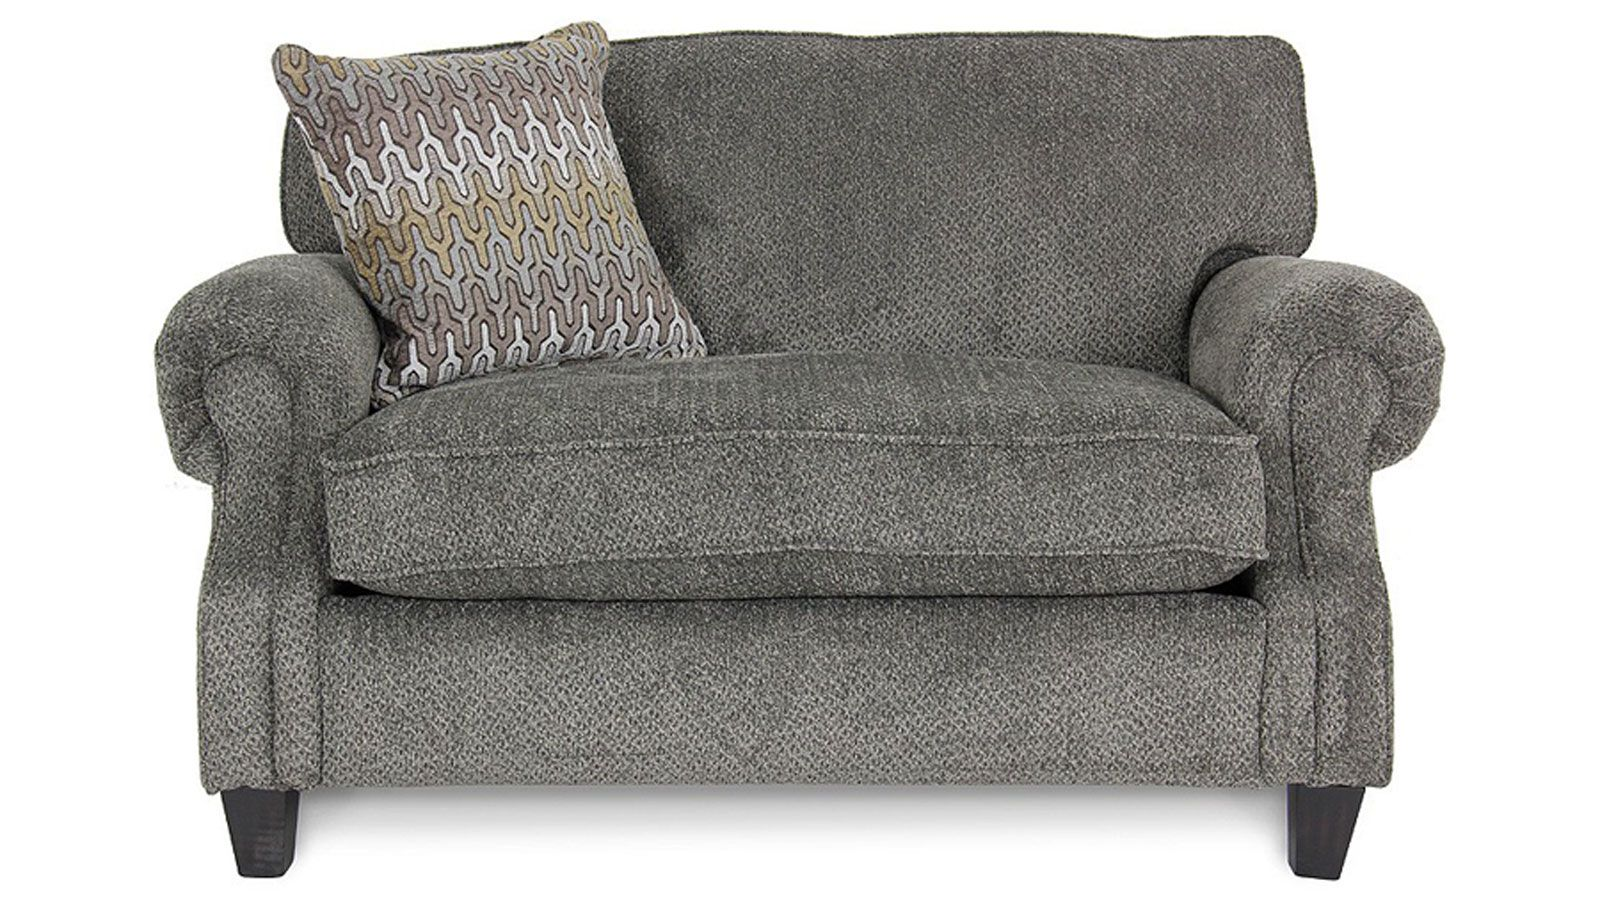 Upholstered With Velvety Pewter Fabric And Excellently Crafted In America This Sleeper Sofa